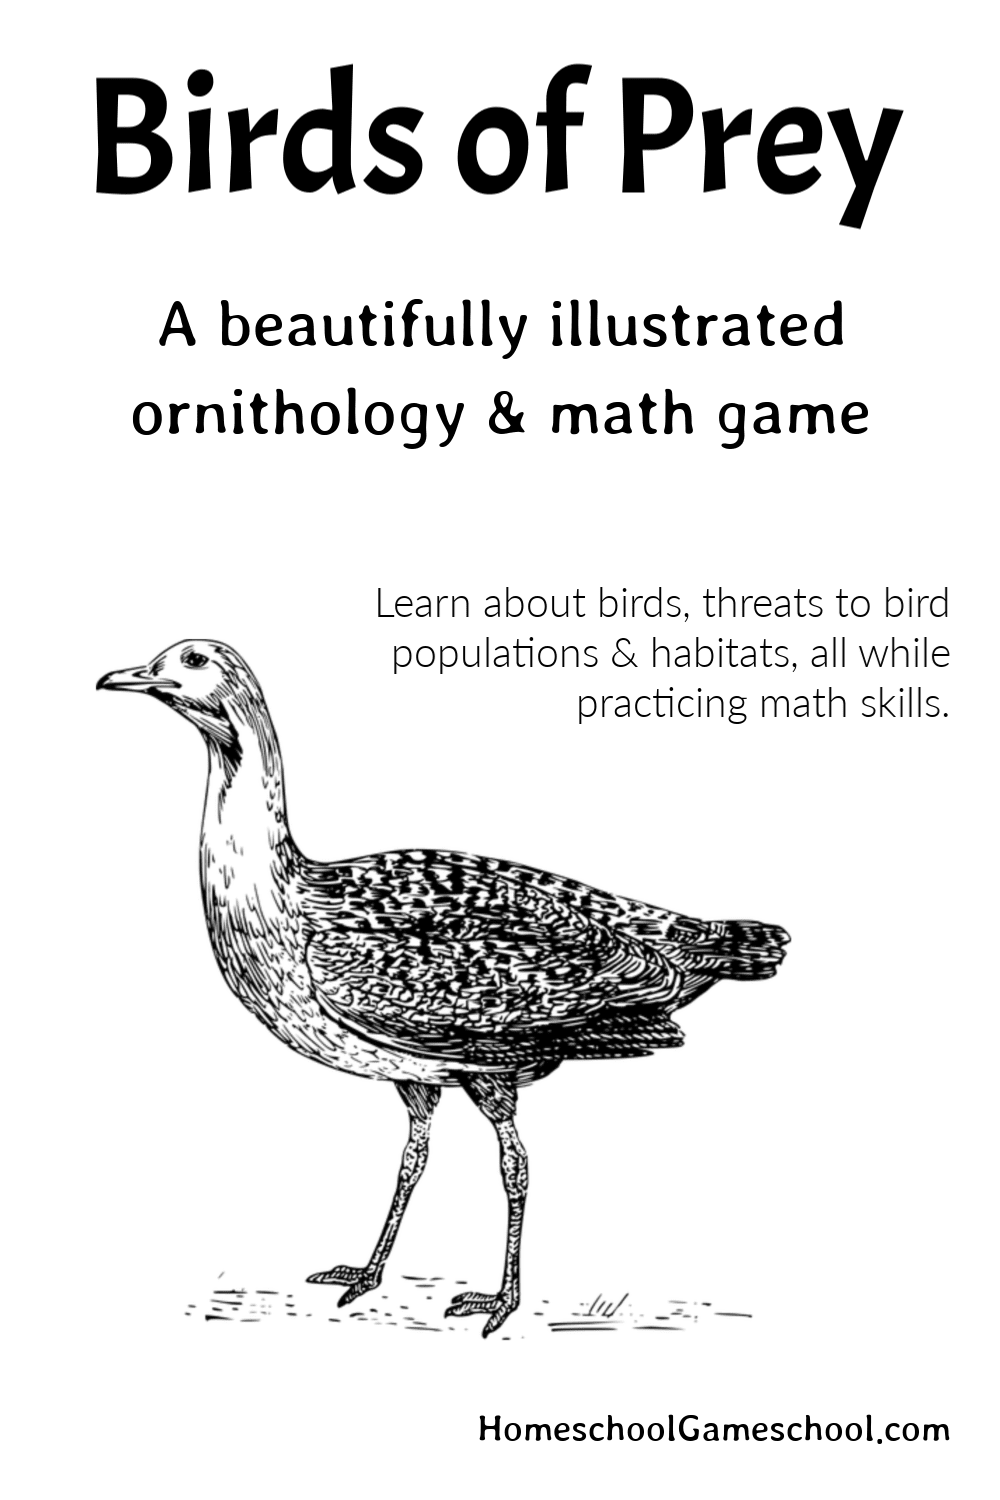 Birds of Prey Ornithology Game (Printable)